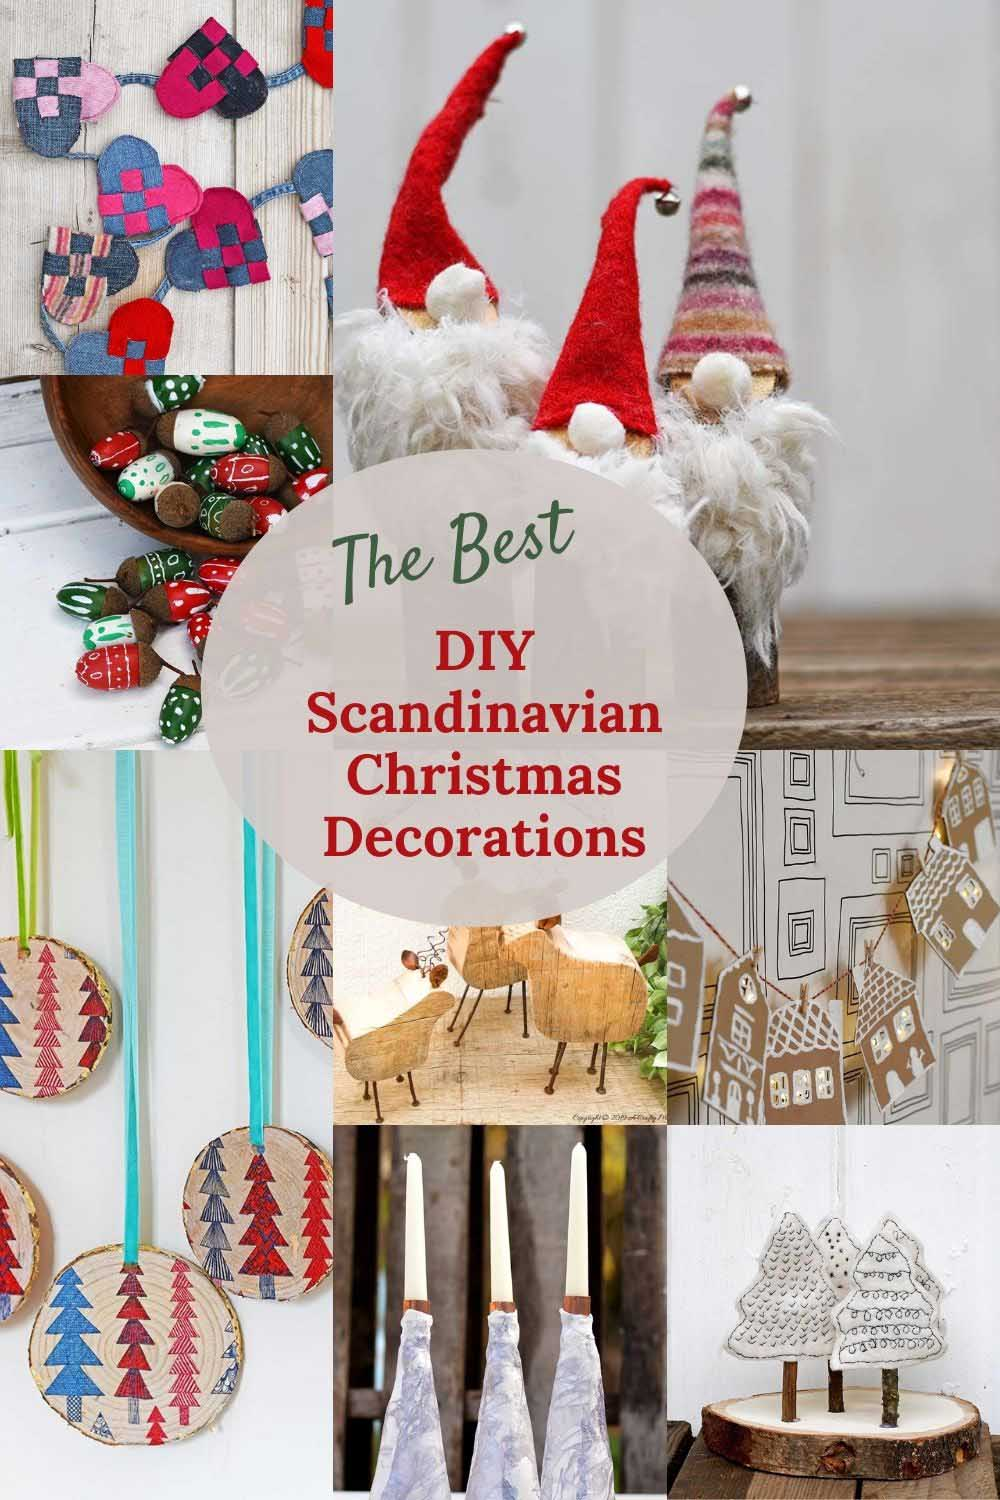 the best DIY Scandinavian Christmas Decorations and crafts